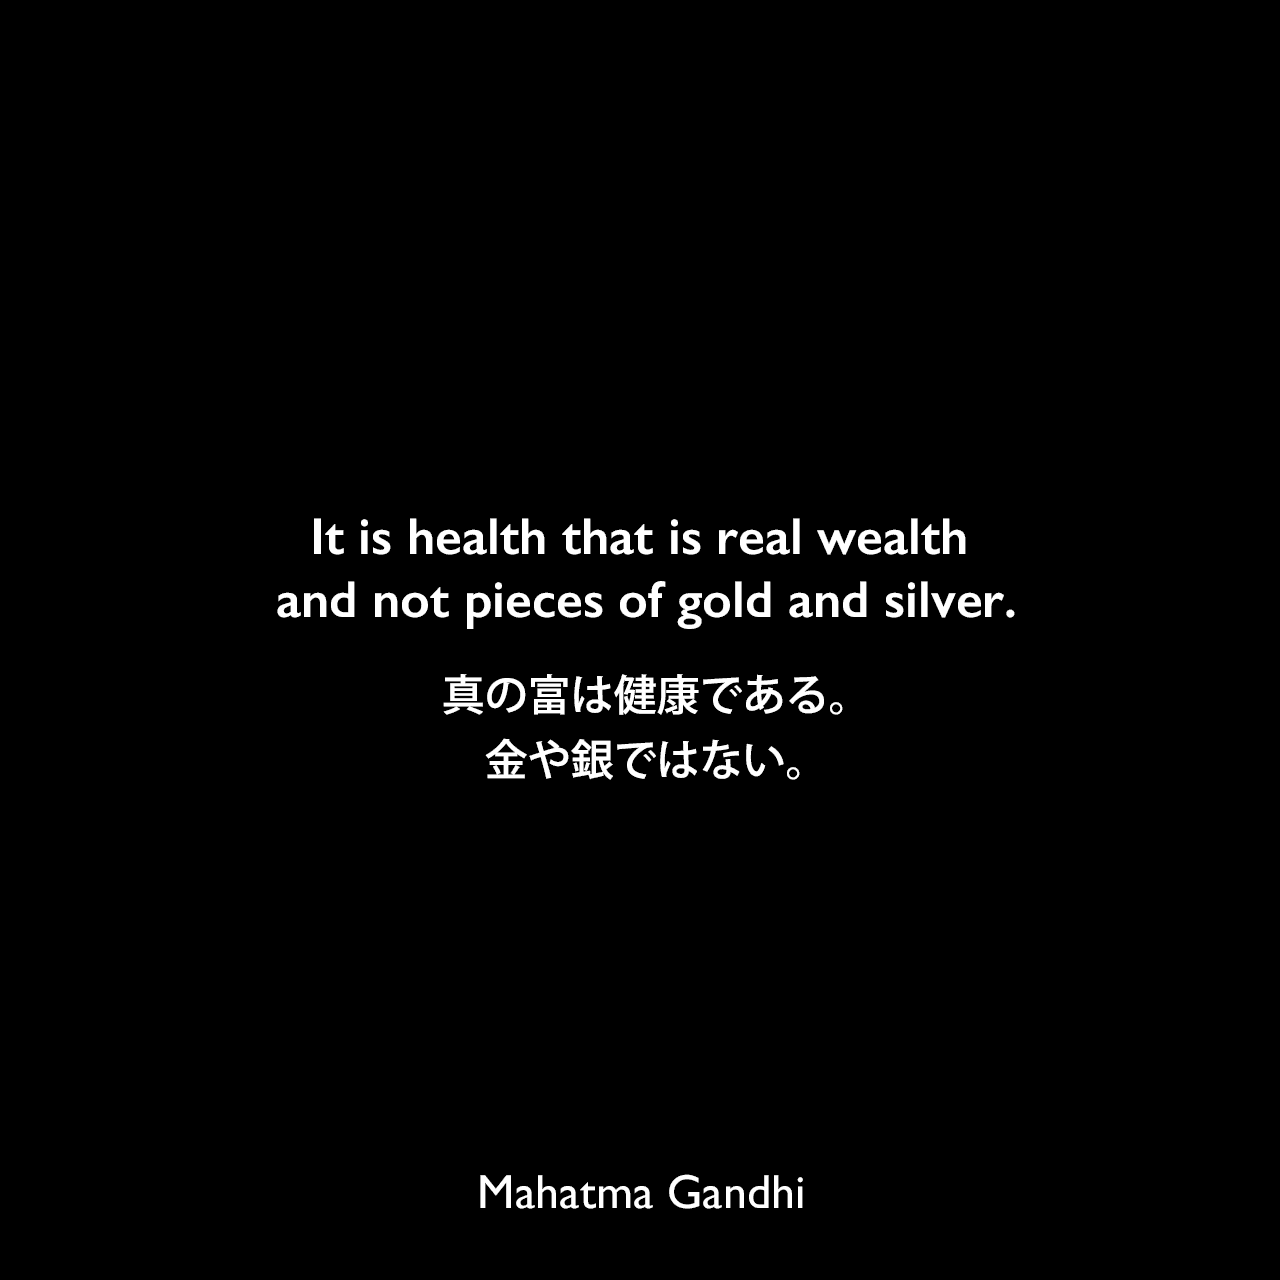 It is health that is real wealth and not pieces of gold and silver.真の富は健康である。金や銀ではない。Mahatma Gandhi